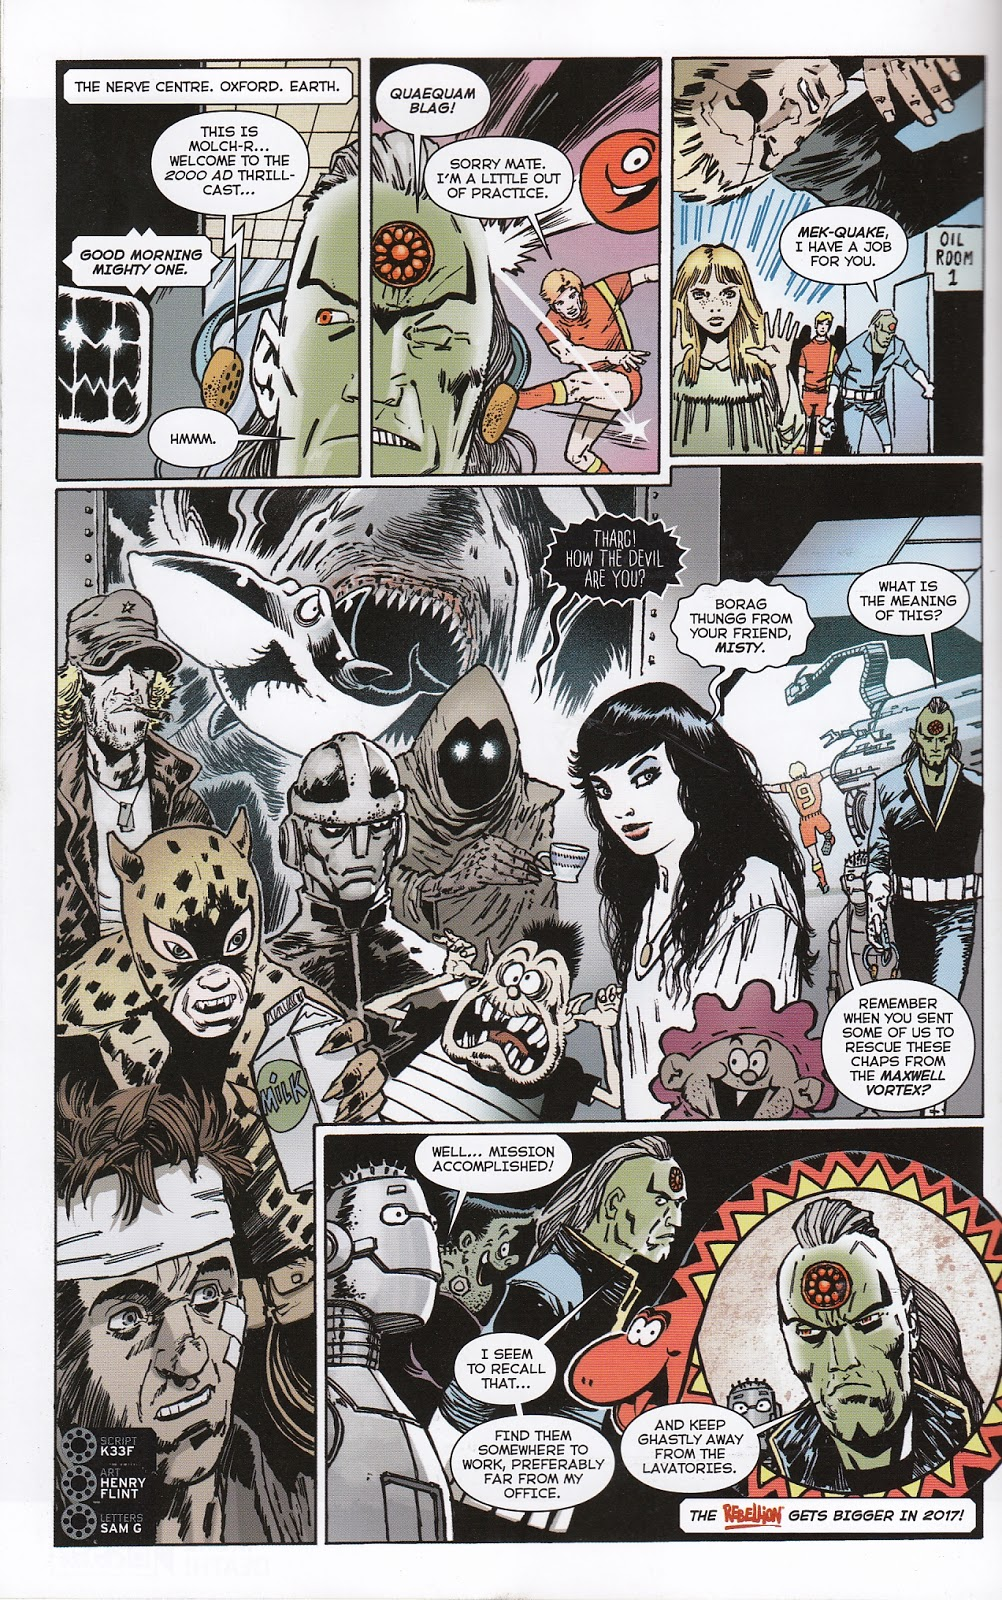 """A page from the 2000AD Free Comic Book Day 2017 giveaway, featuring numerous Fleetway characters now owned by Rebellion. In Panel One, Max, the computer from """"The Thirteenth Floor"""", first published in Scream; Panel 2, Roy of the Rovers, Panel 3, Rosemary Black from the Misty story """"Moonchild"""";  Panel Four, Major Eazy from """"Battle"""", the Leopard of Lime Street (from Buster), Faceache, Charley Bourne (from """"Charley's War"""" and Scream editor Ghastly McNasty and Misty editor, Misty, and more; and finally, in Panel 5, Sid's Snake from Whizzer and Chips"""